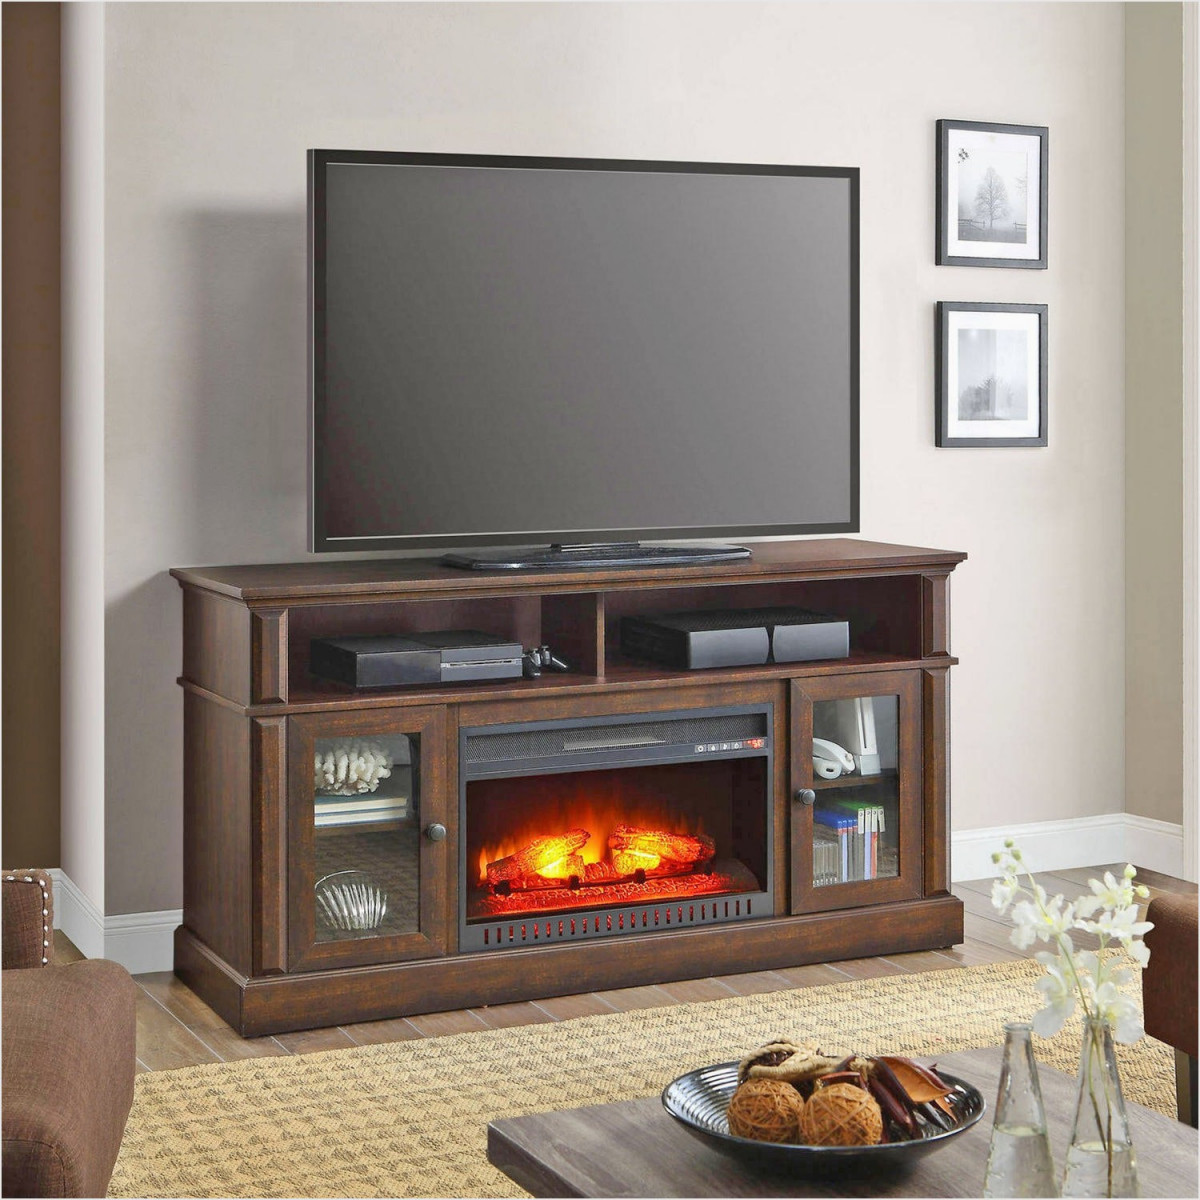 65 Inch Electric Fireplace Best Of Electric Fireplace Tv Stand Prime Cheap Fireplace Tv Stands